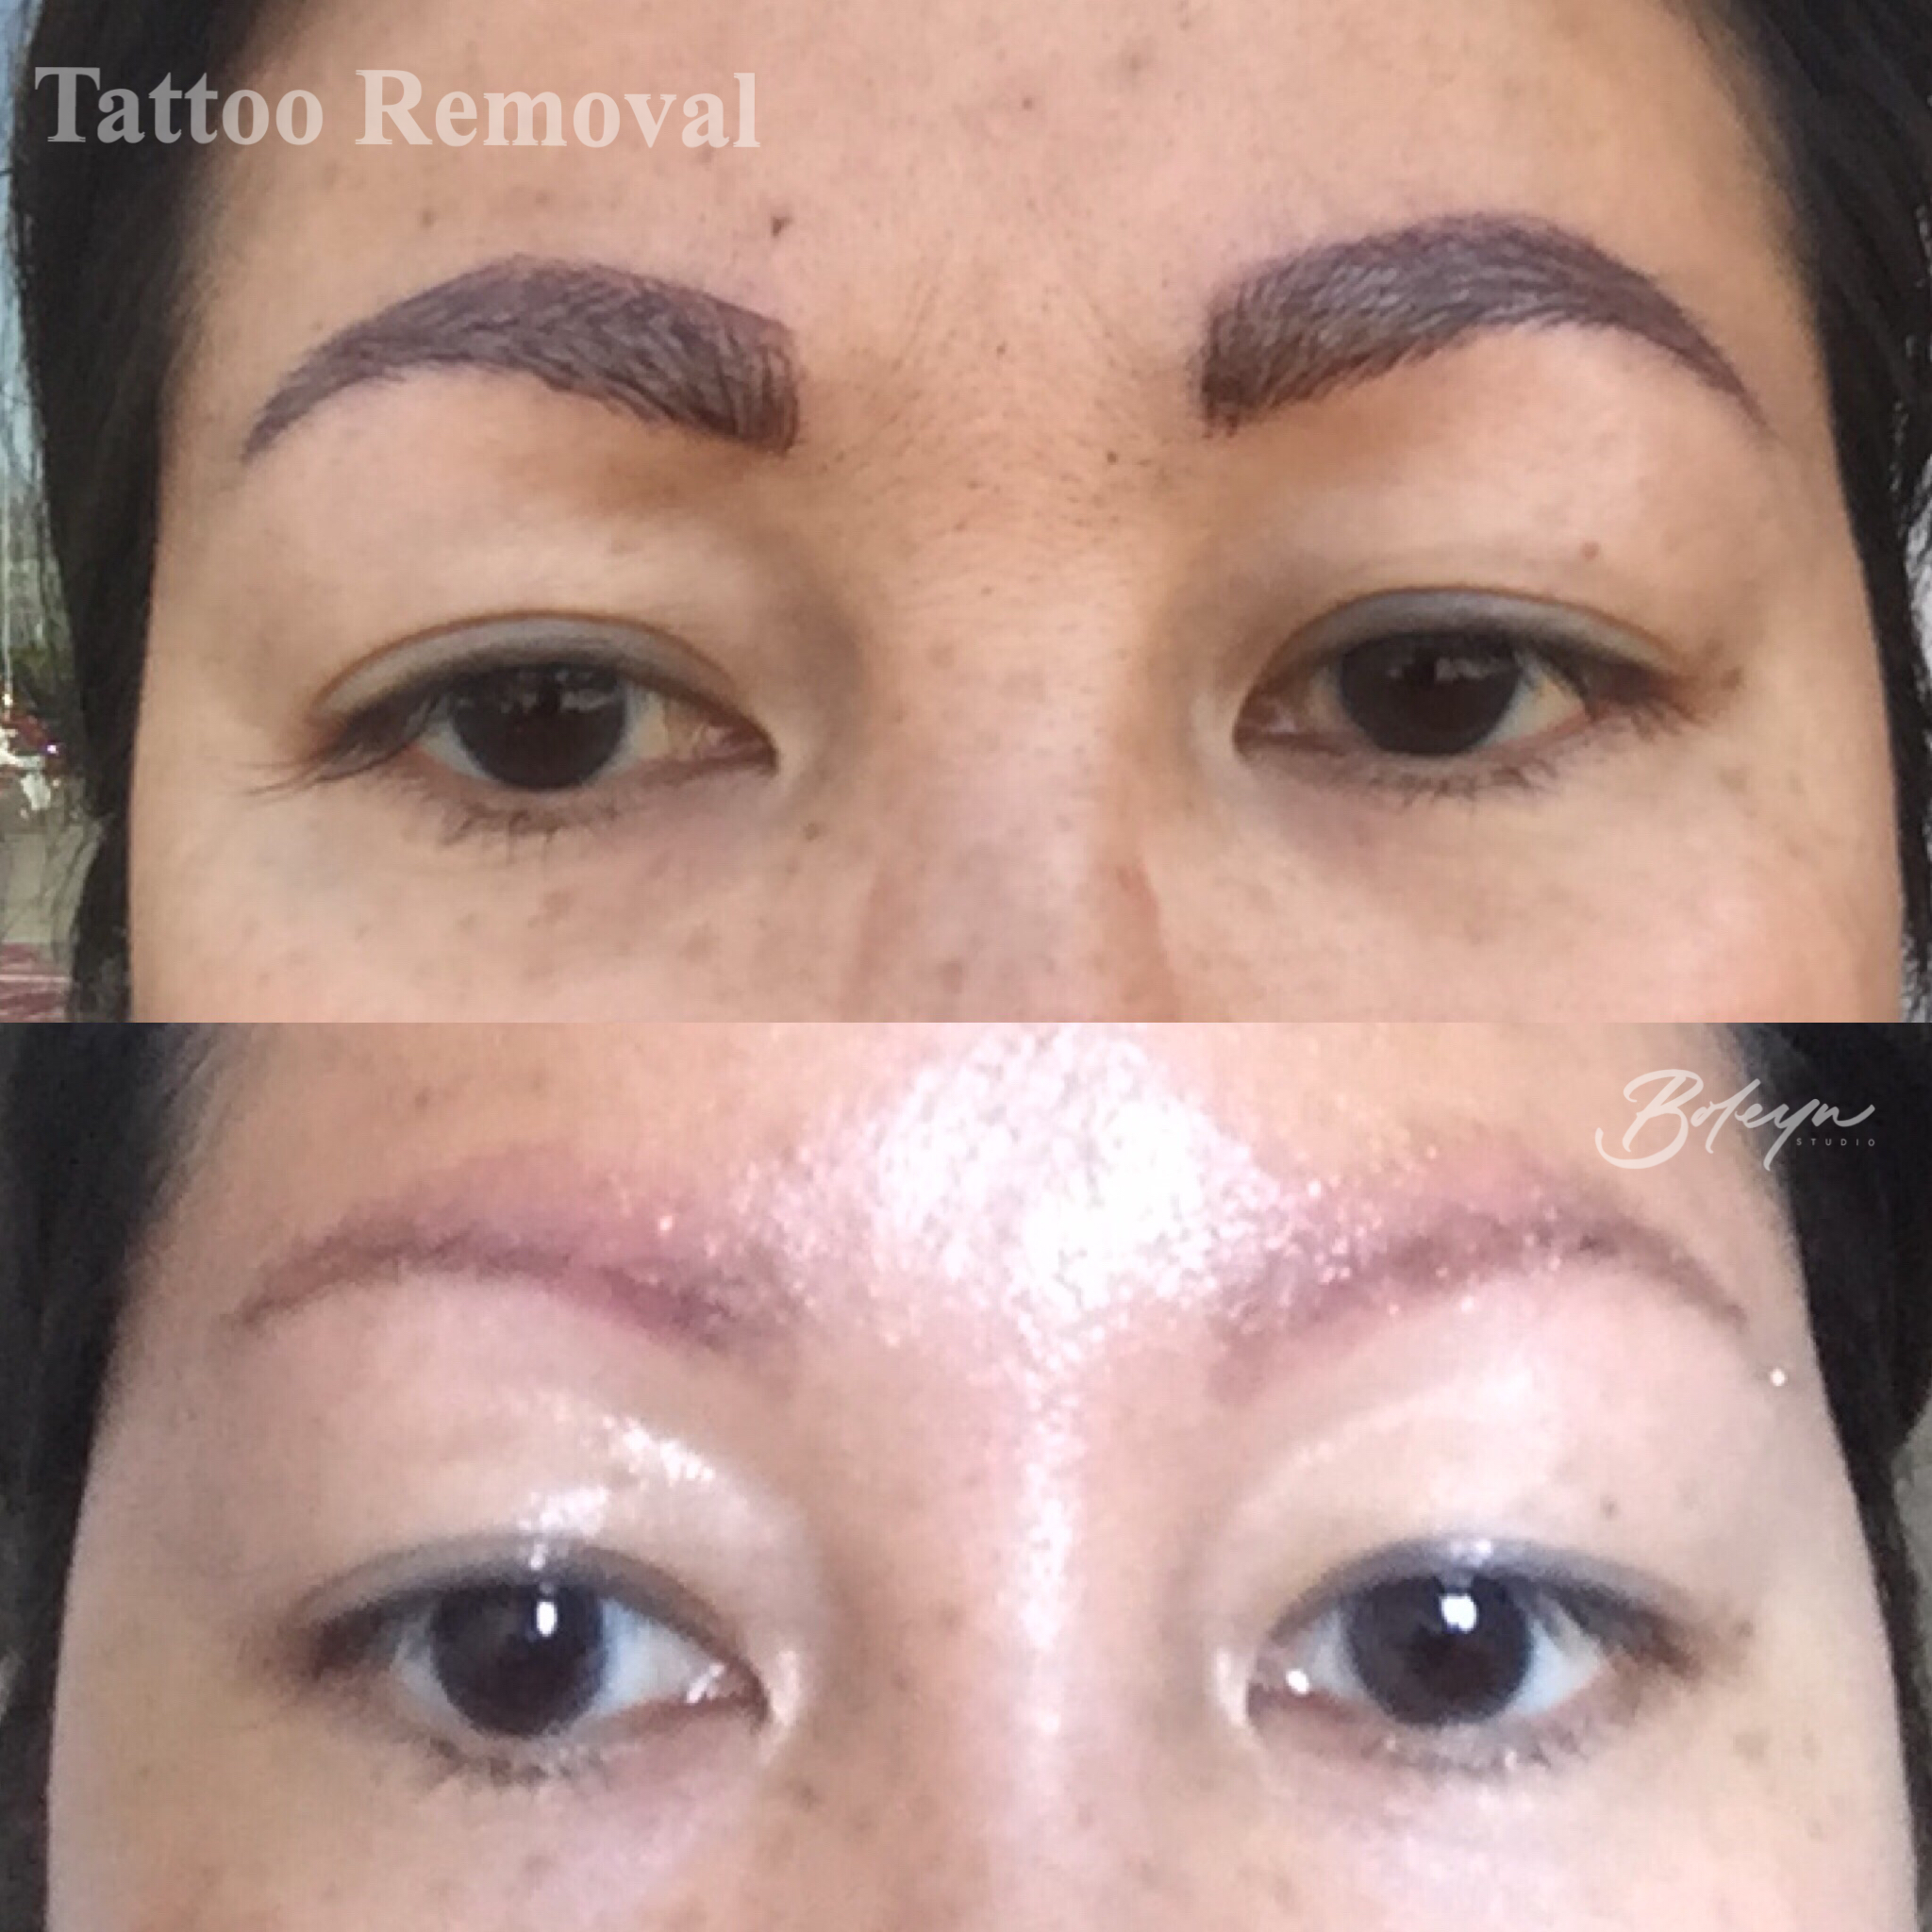 Saline Tattoo Removal – Natalia Boleyn – Medium